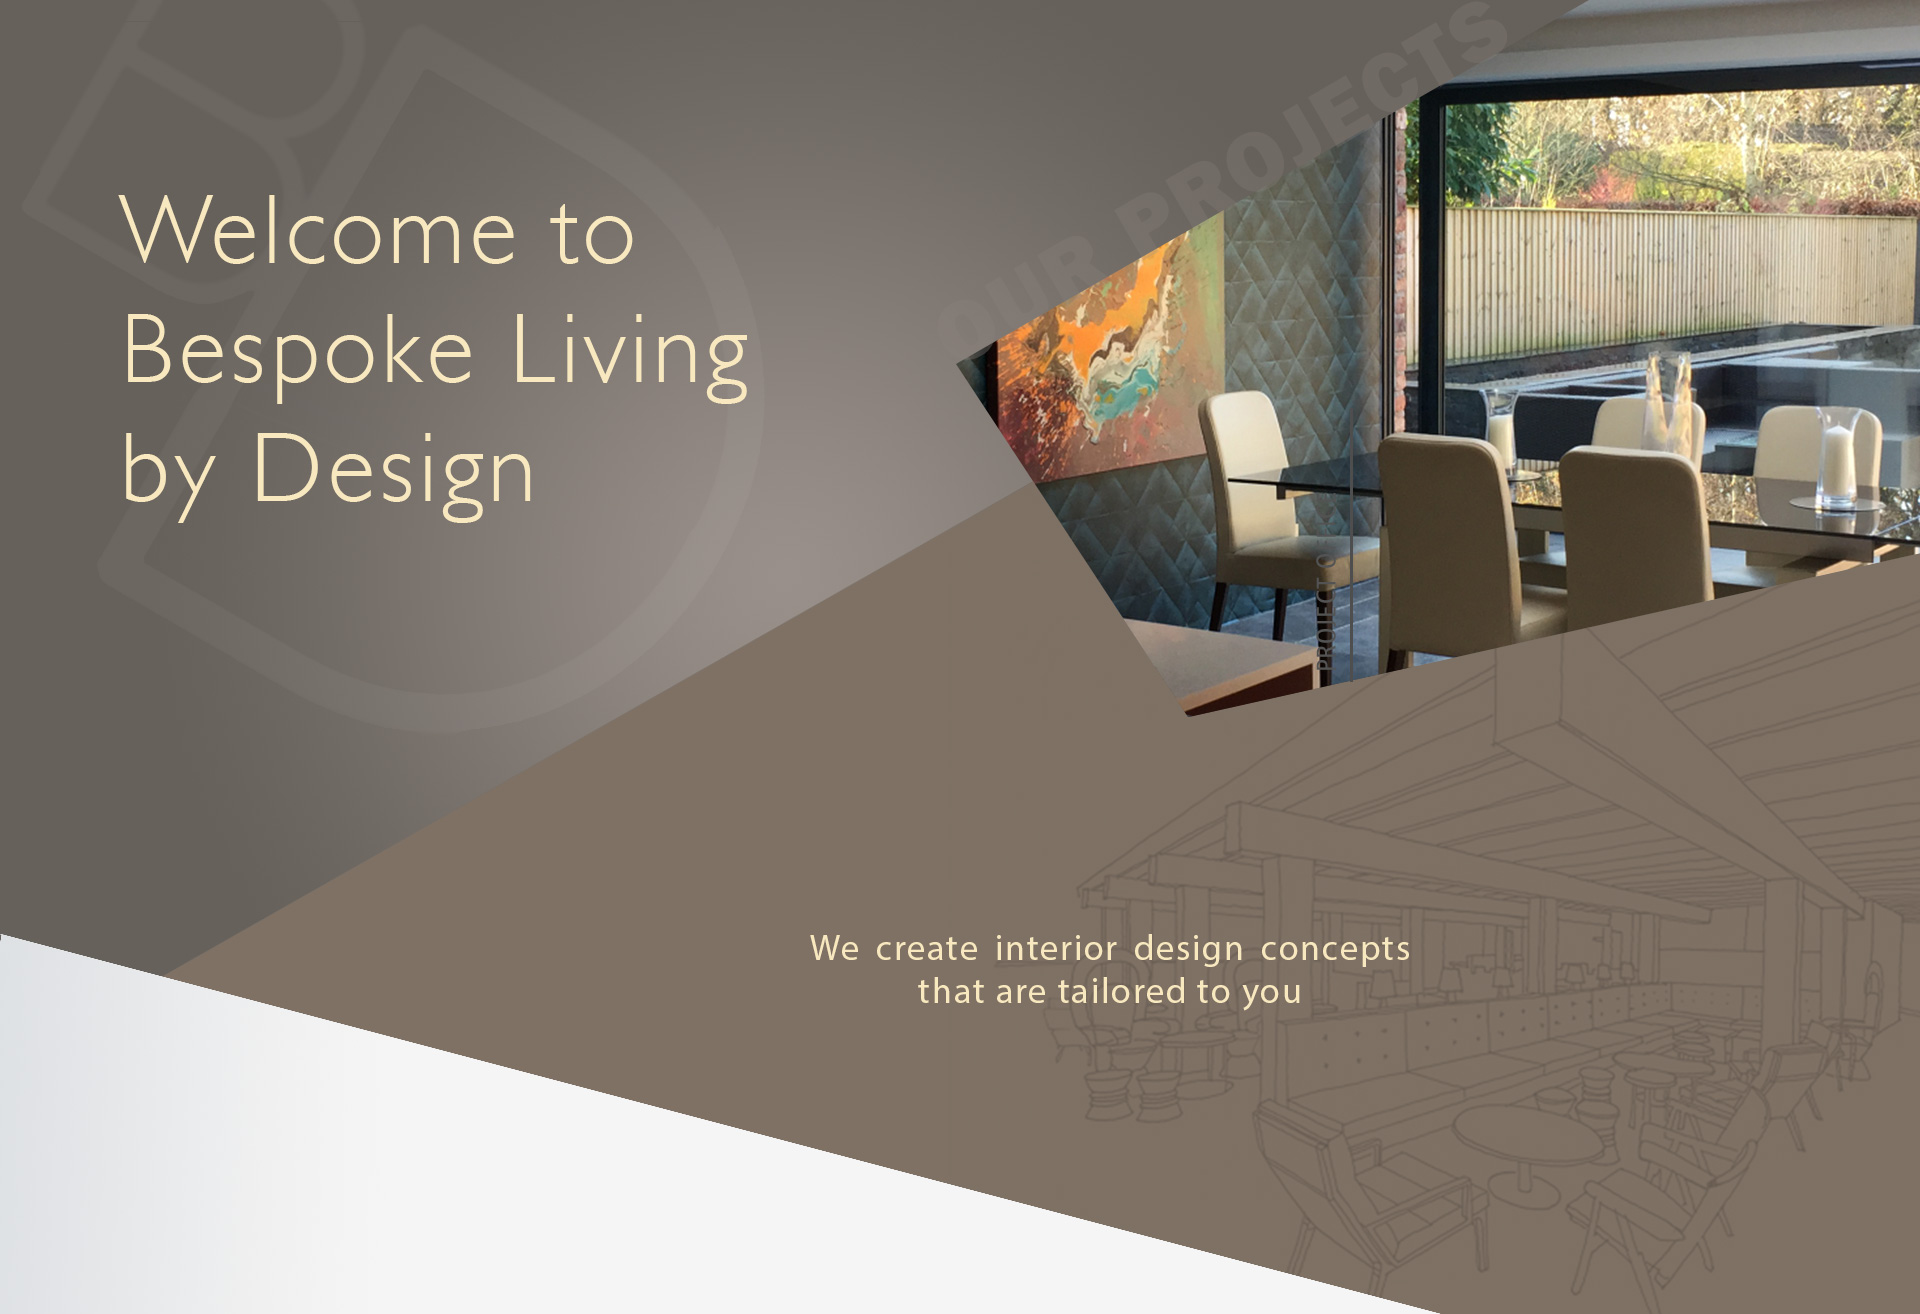 Interior design consultant bespoke interior design for Interior design consultant